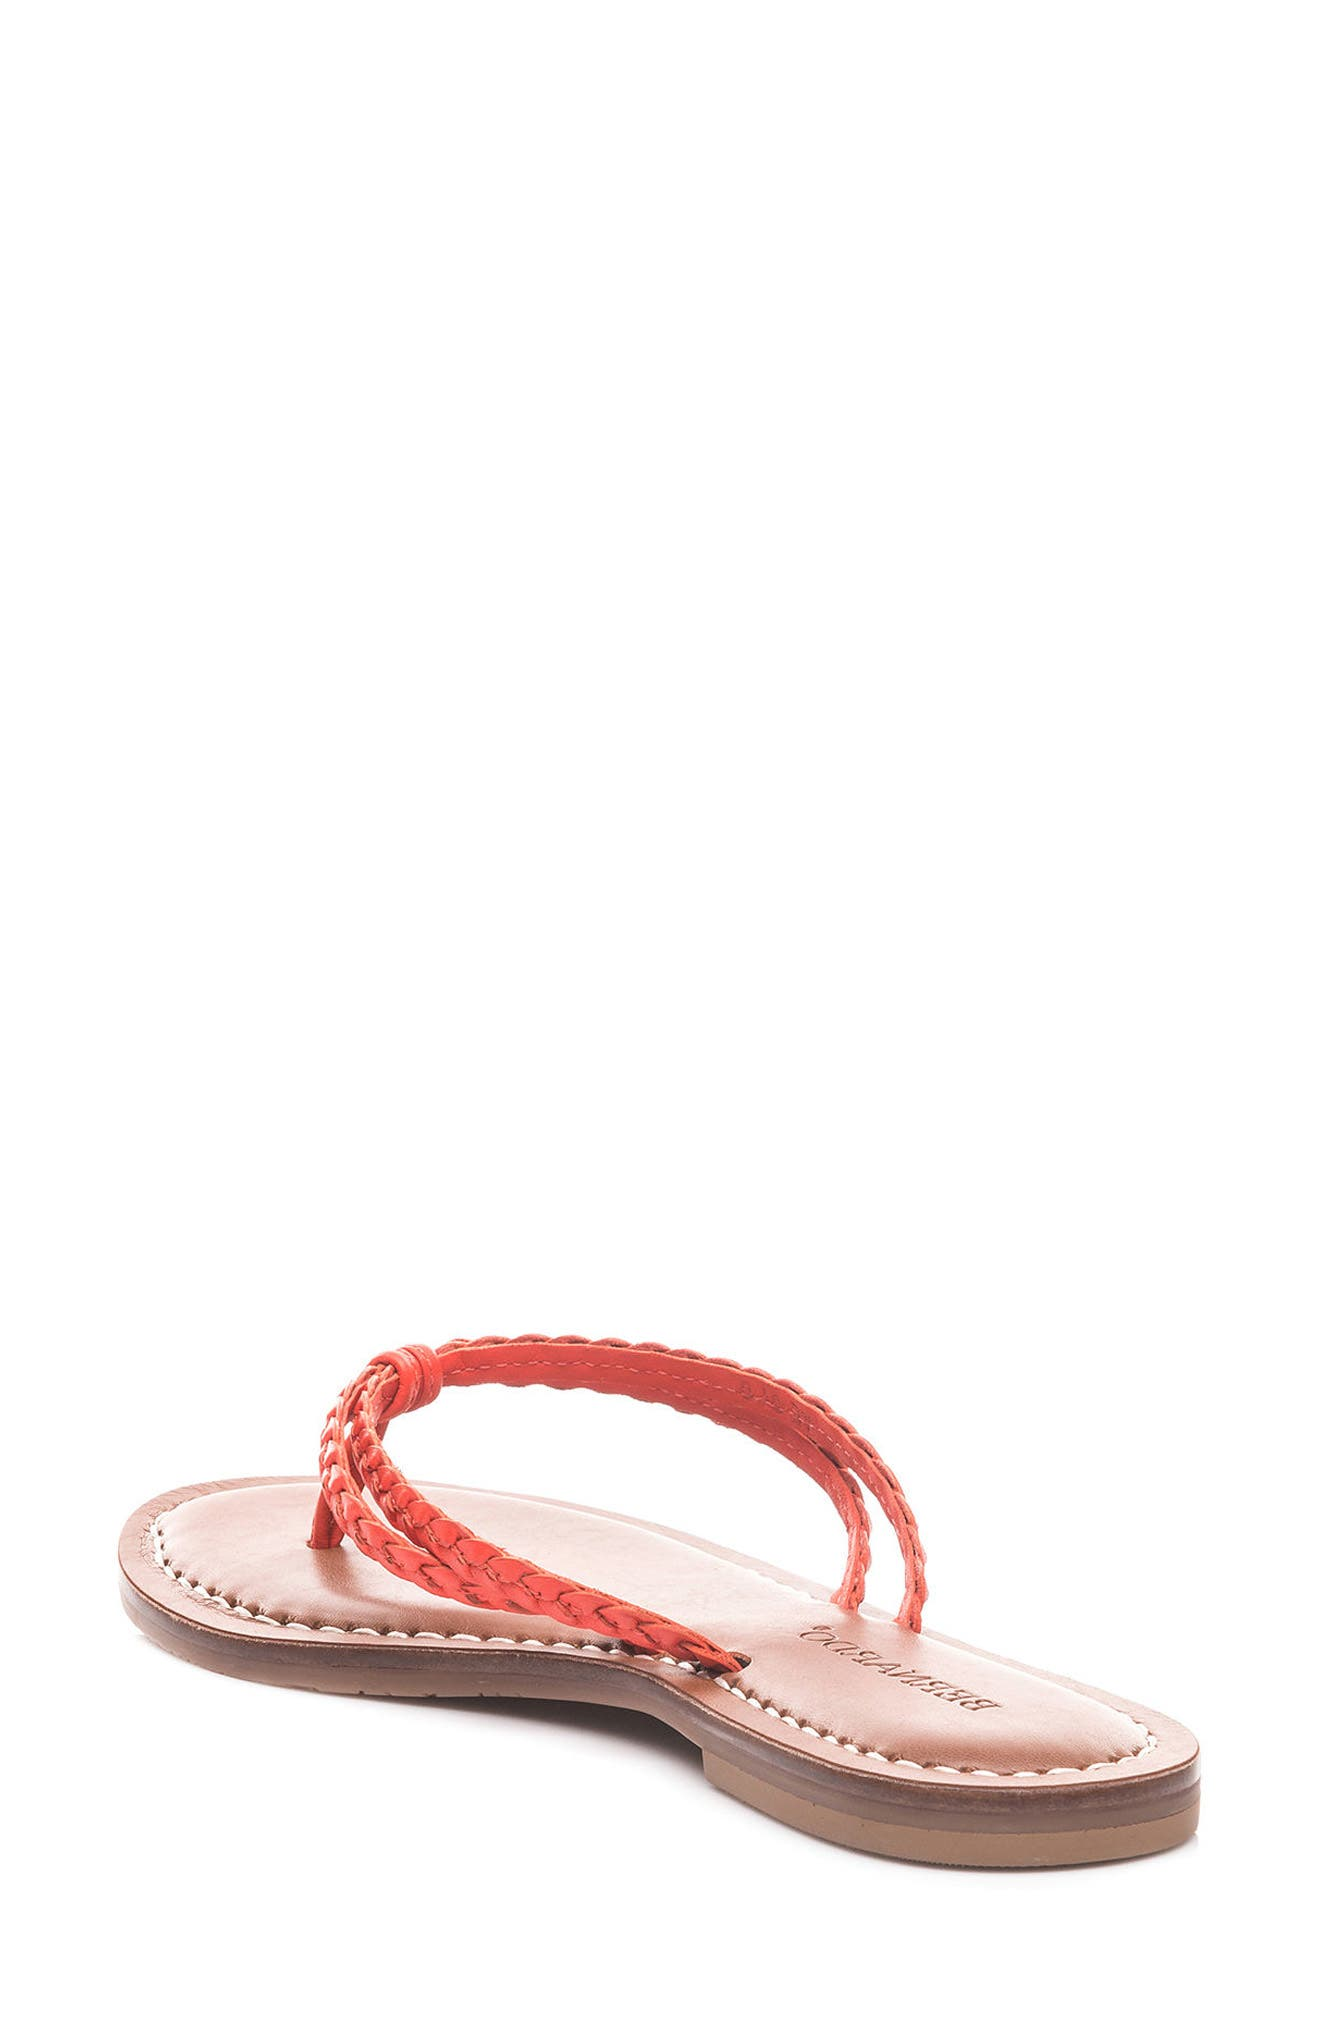 Bernardo Greta Braided Strap Sandal,                             Alternate thumbnail 14, color,